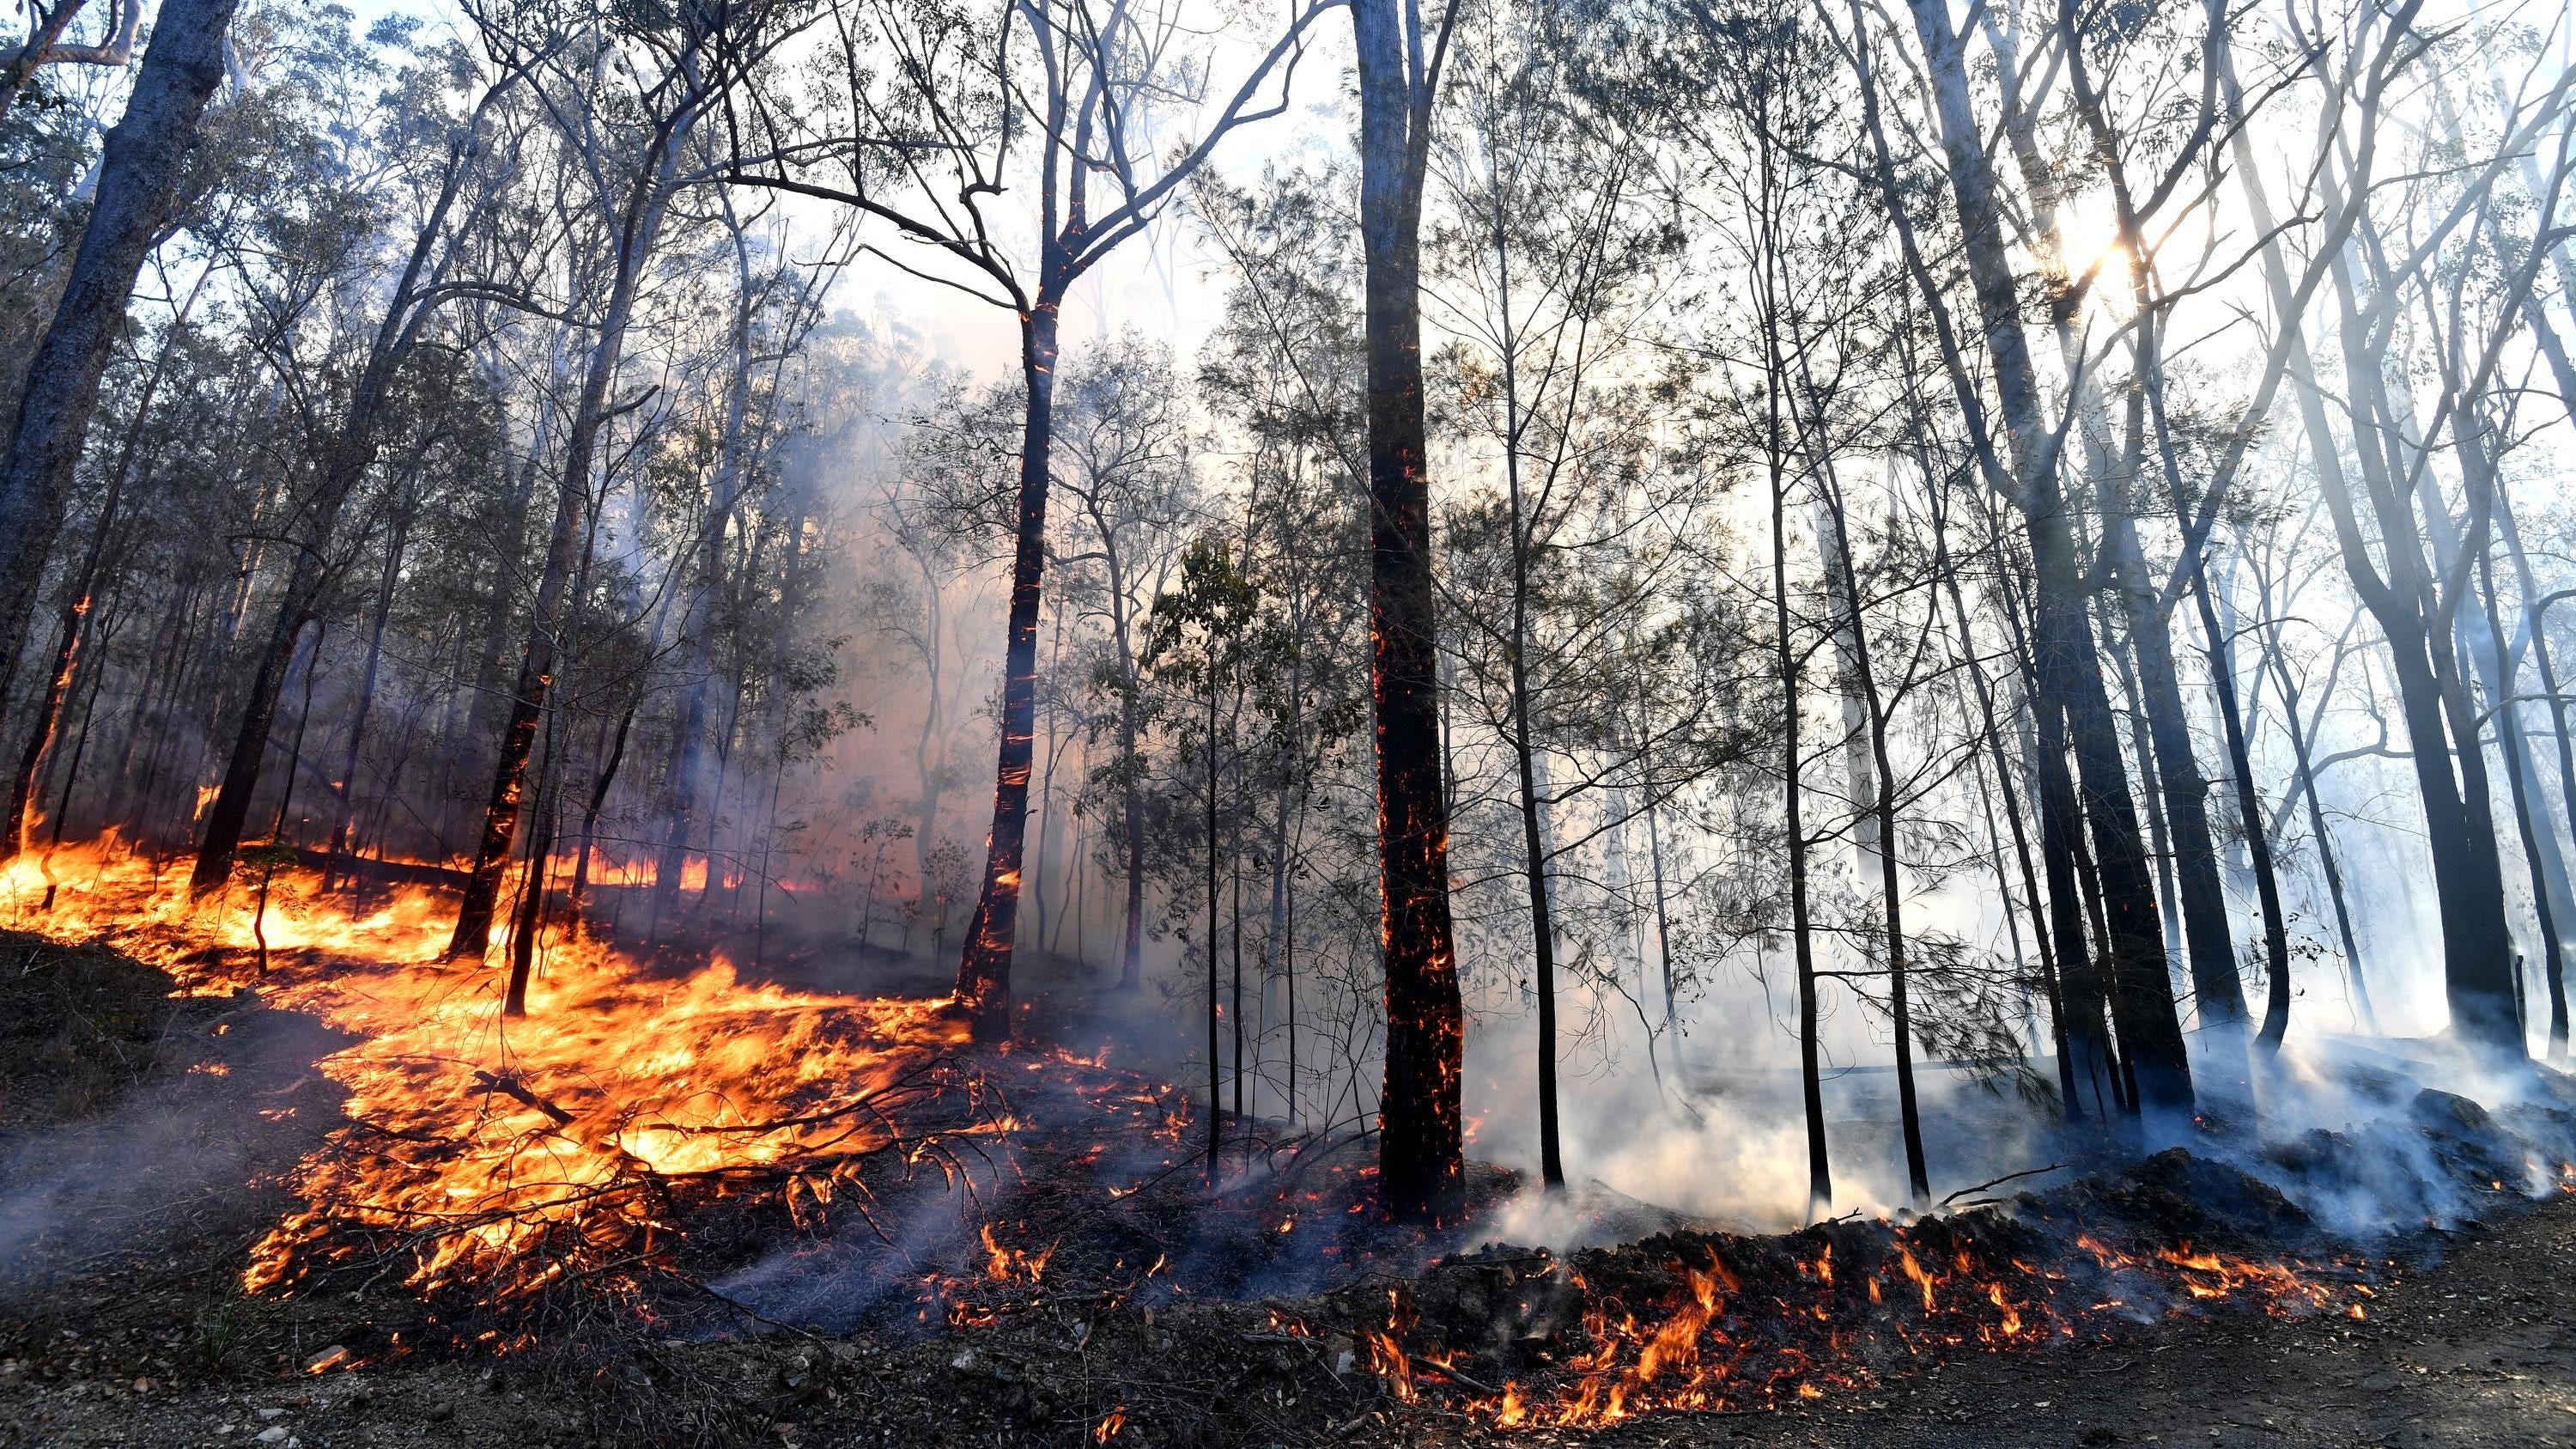 Australia's Terrifying Bushfires Remind Us Climate Change Is Here